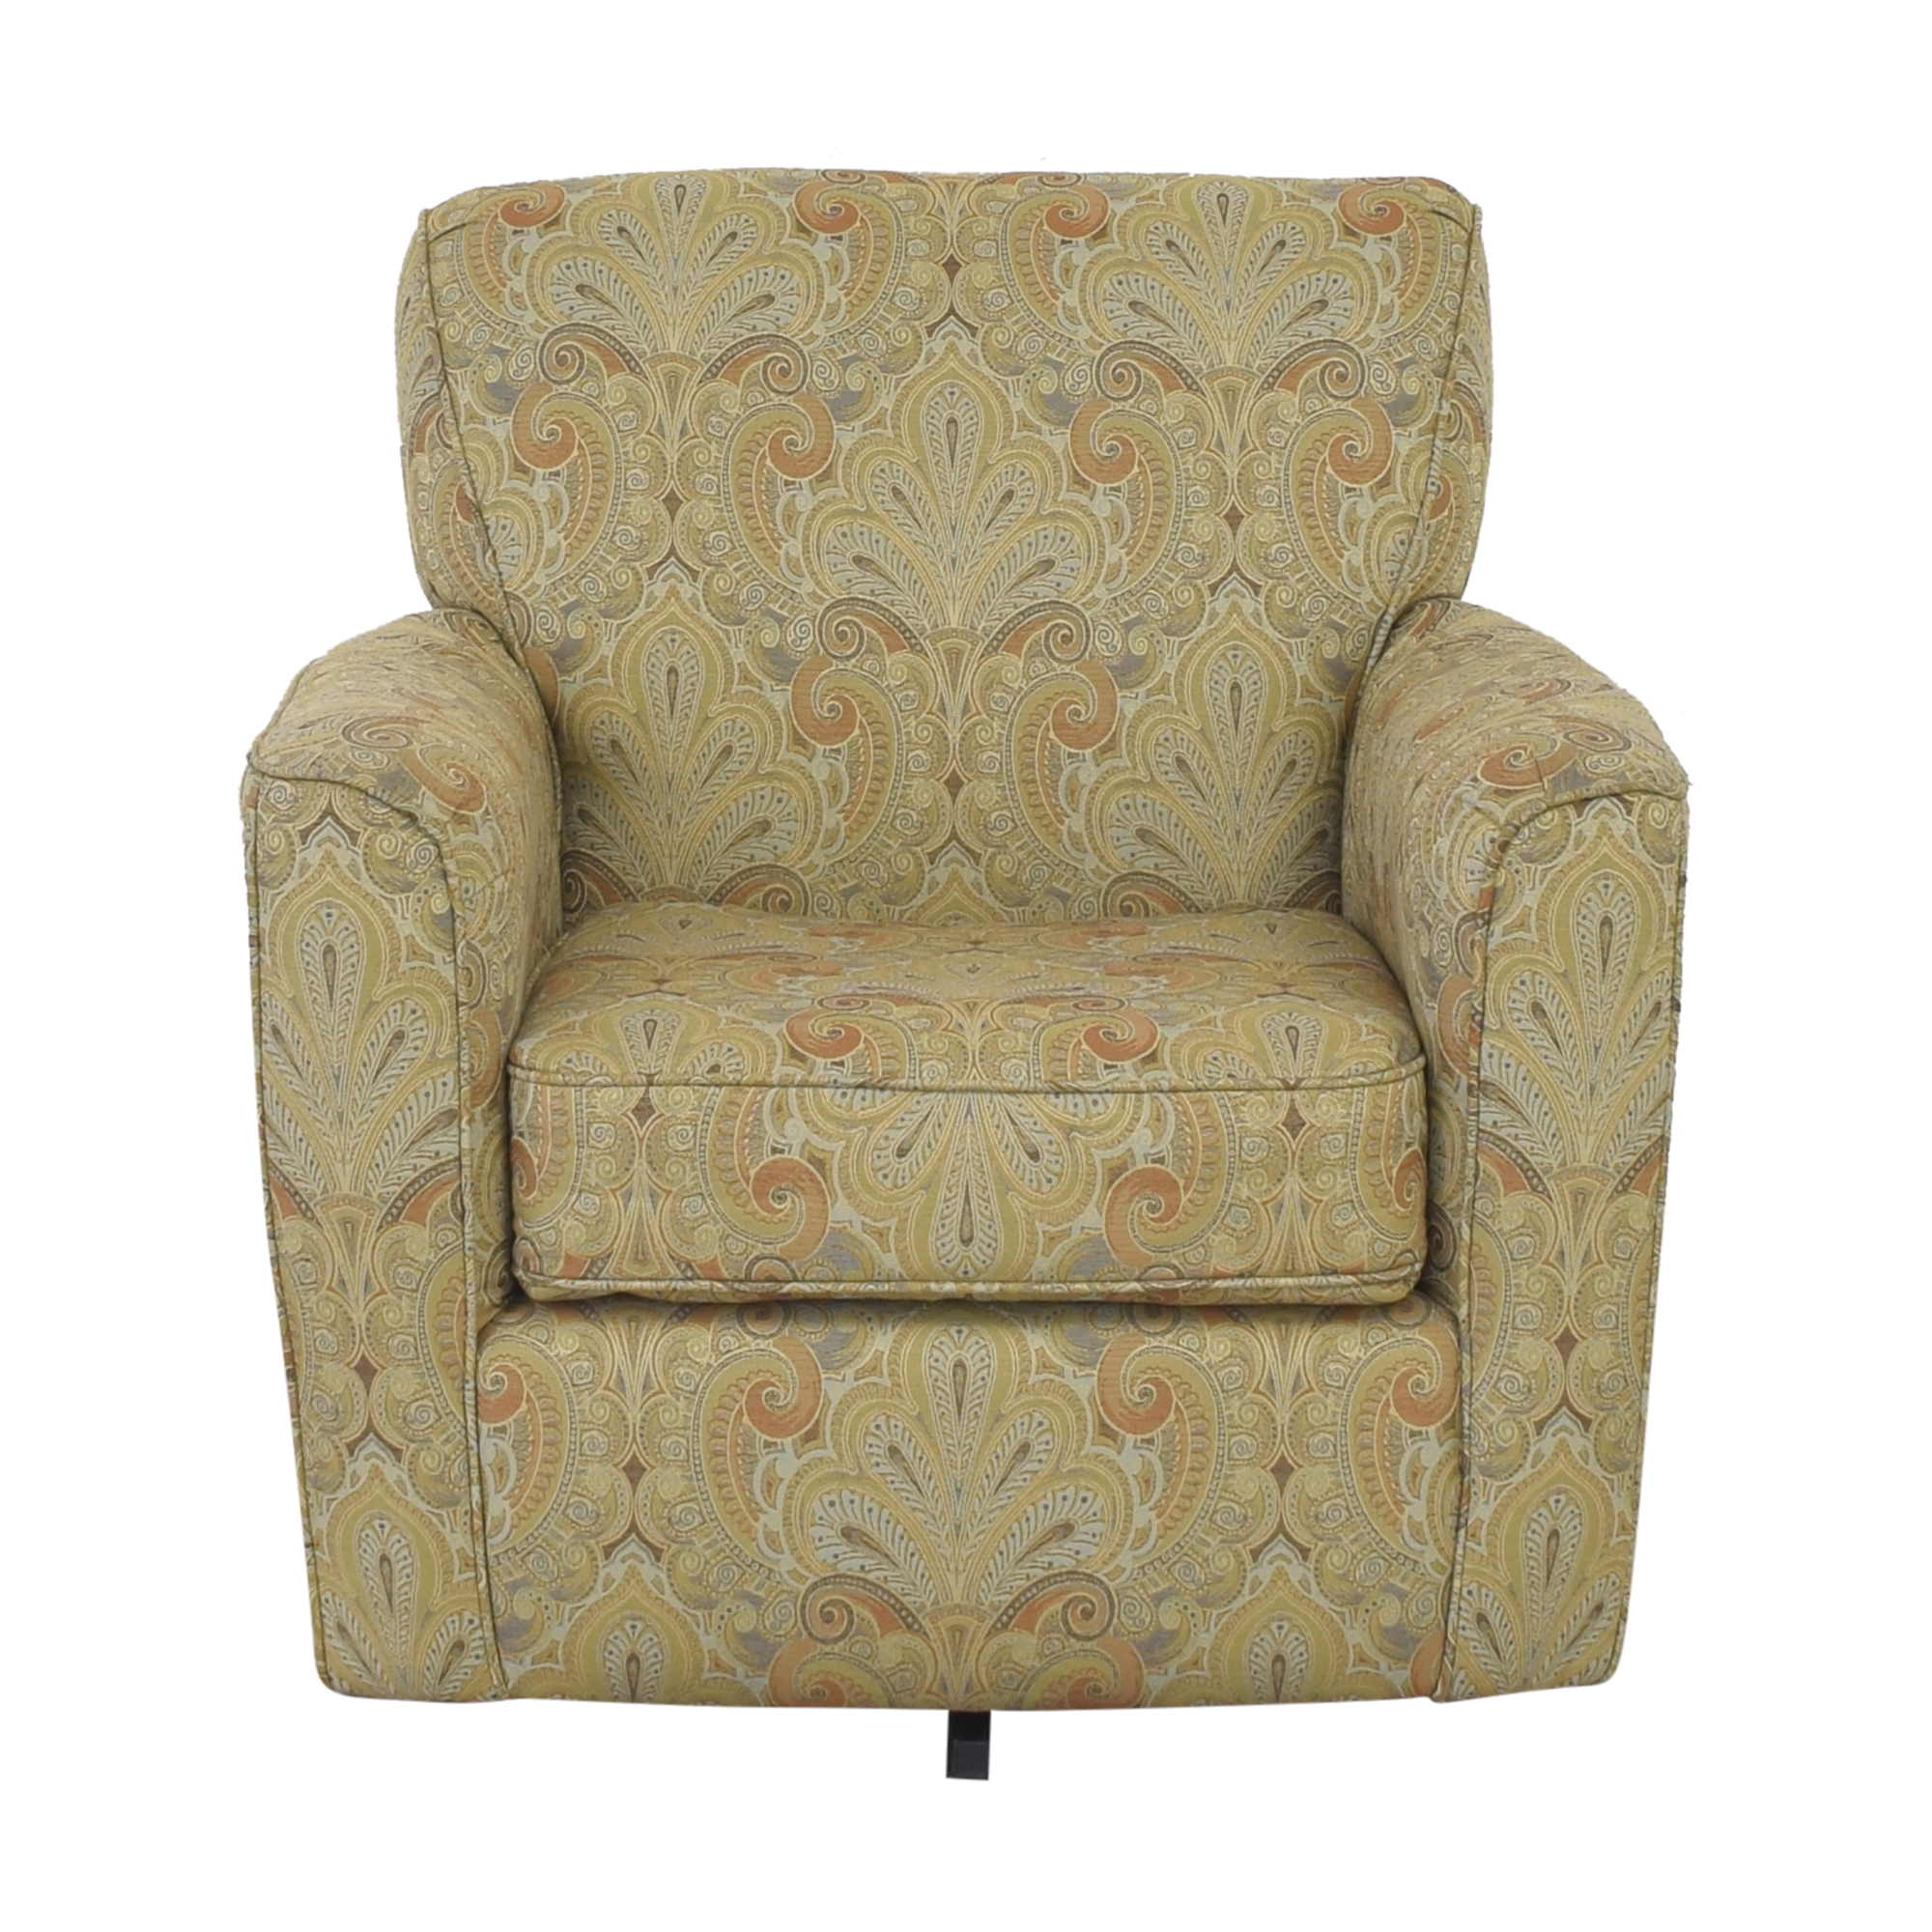 Raymour & Flanigan Raymour & Flanigan Swivel Chair second hand